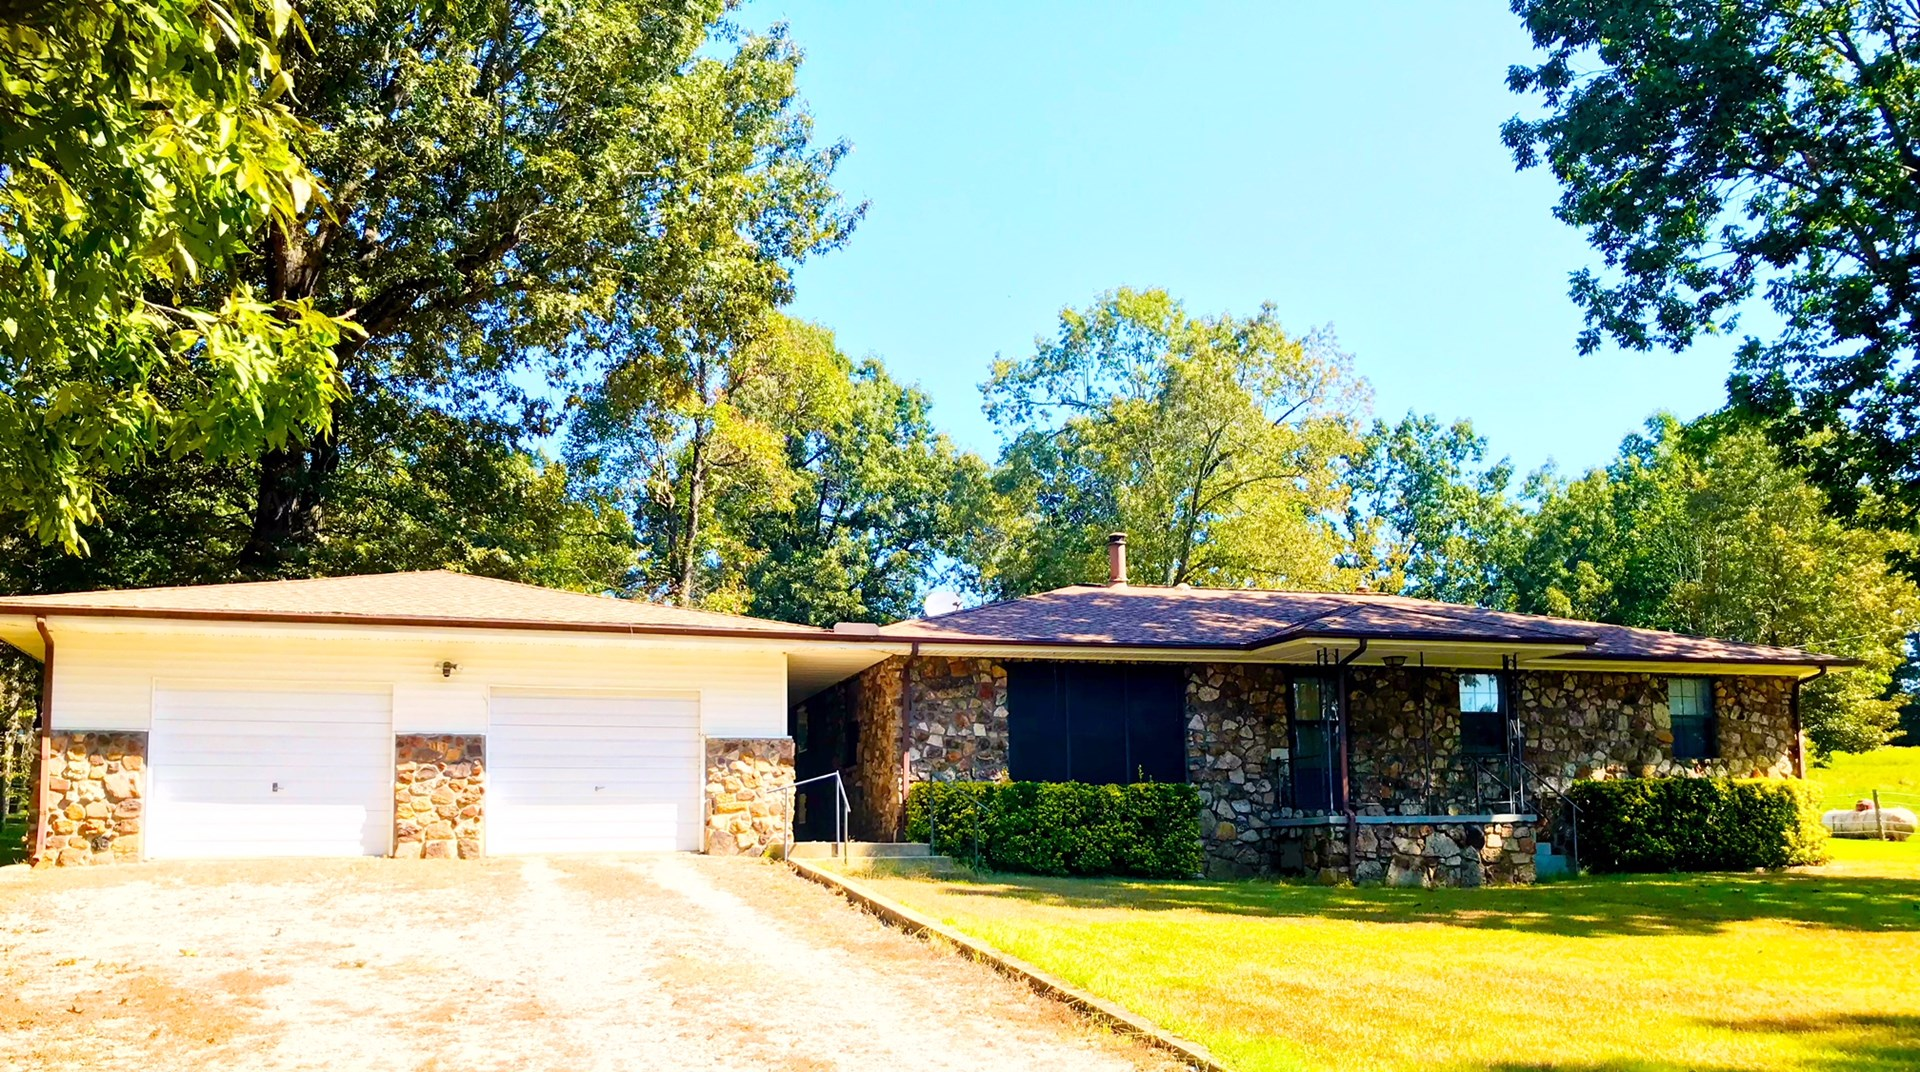 Arkansas Country Home For Sale Hobby Farm on 10 Acres